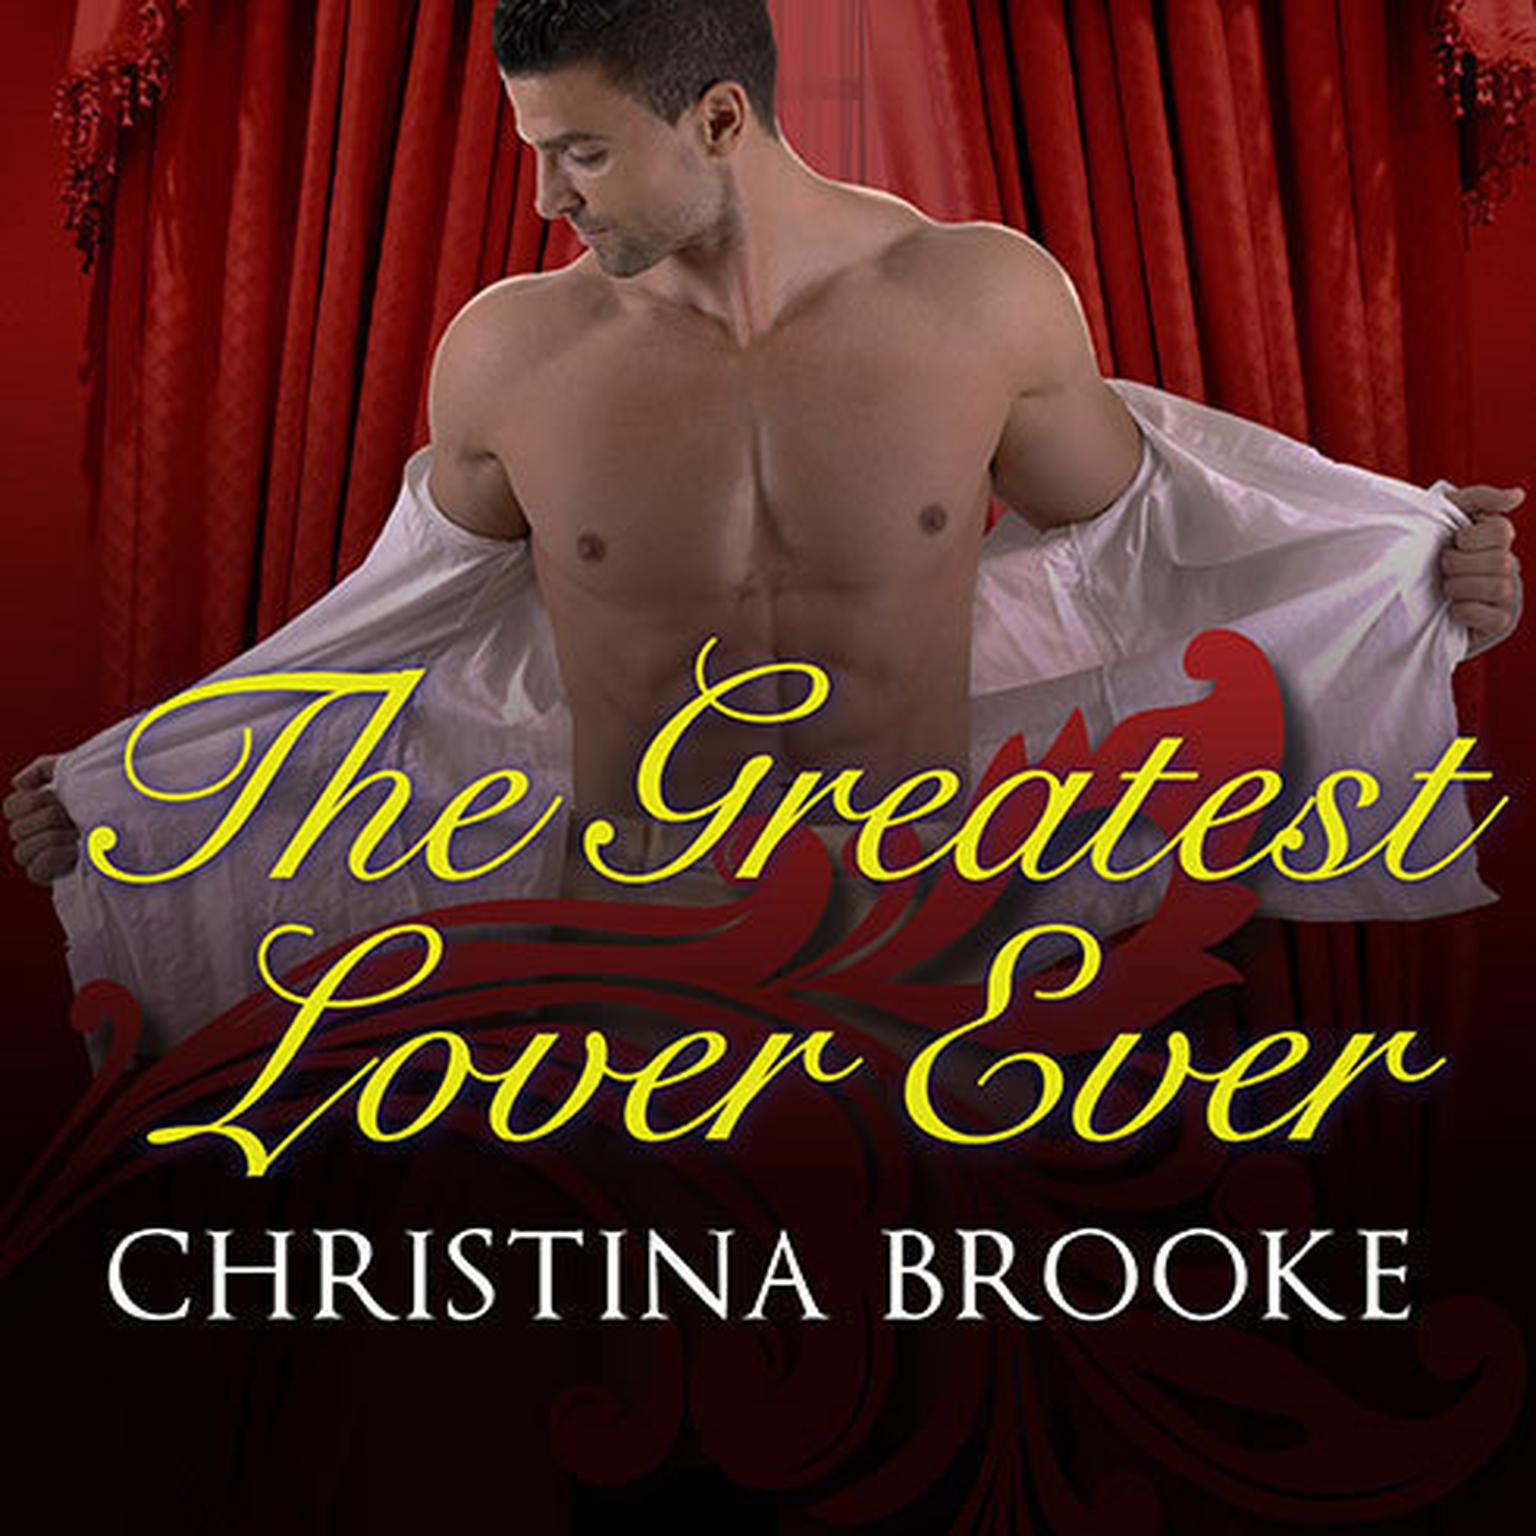 Printable The Greatest Lover Ever Audiobook Cover Art